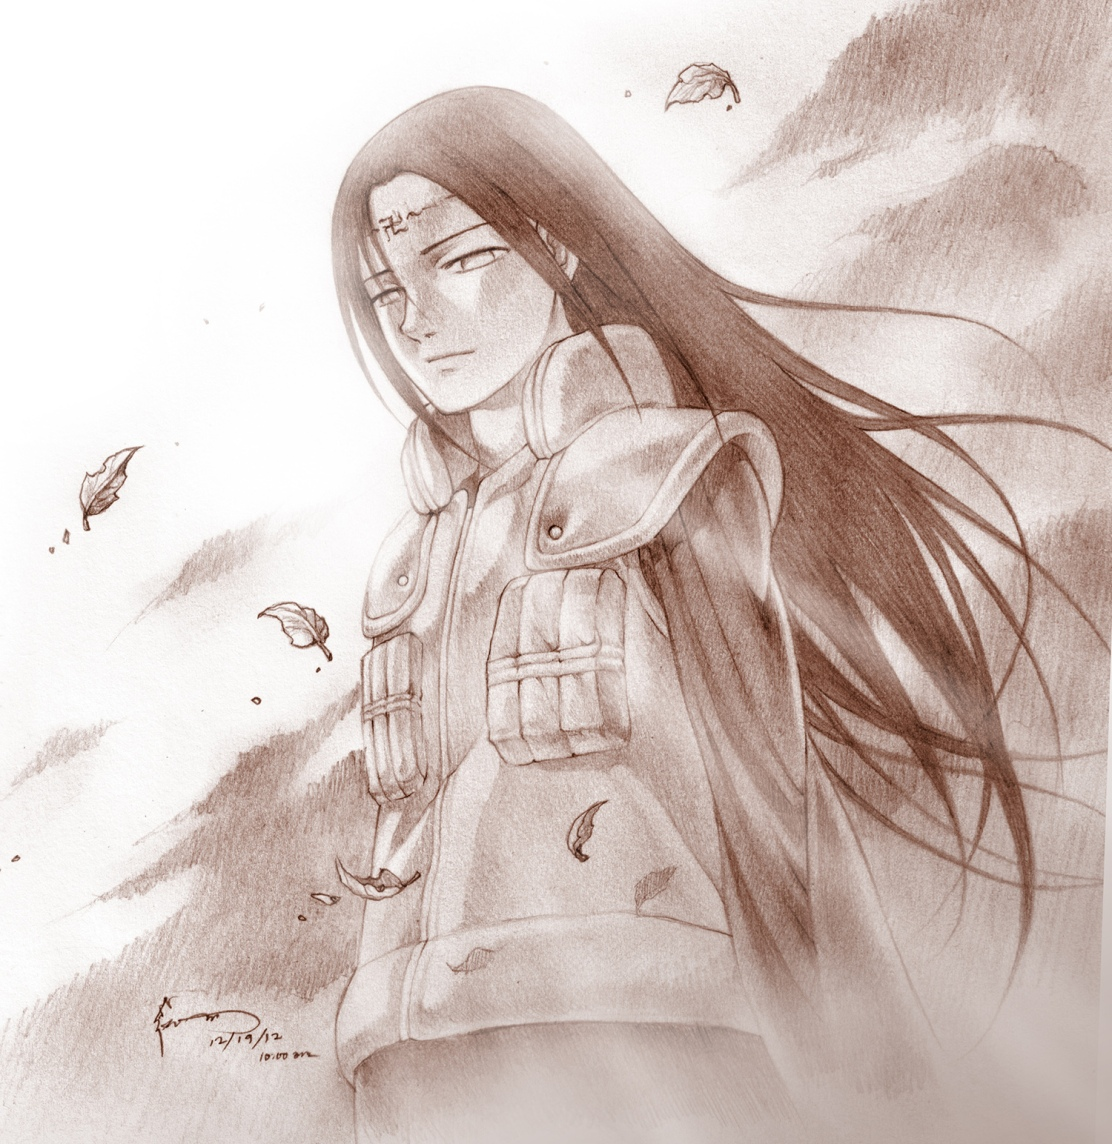 r_i_p__neji_hyuuga__we_will_miss_you_by_nick_ian-d5okxkr